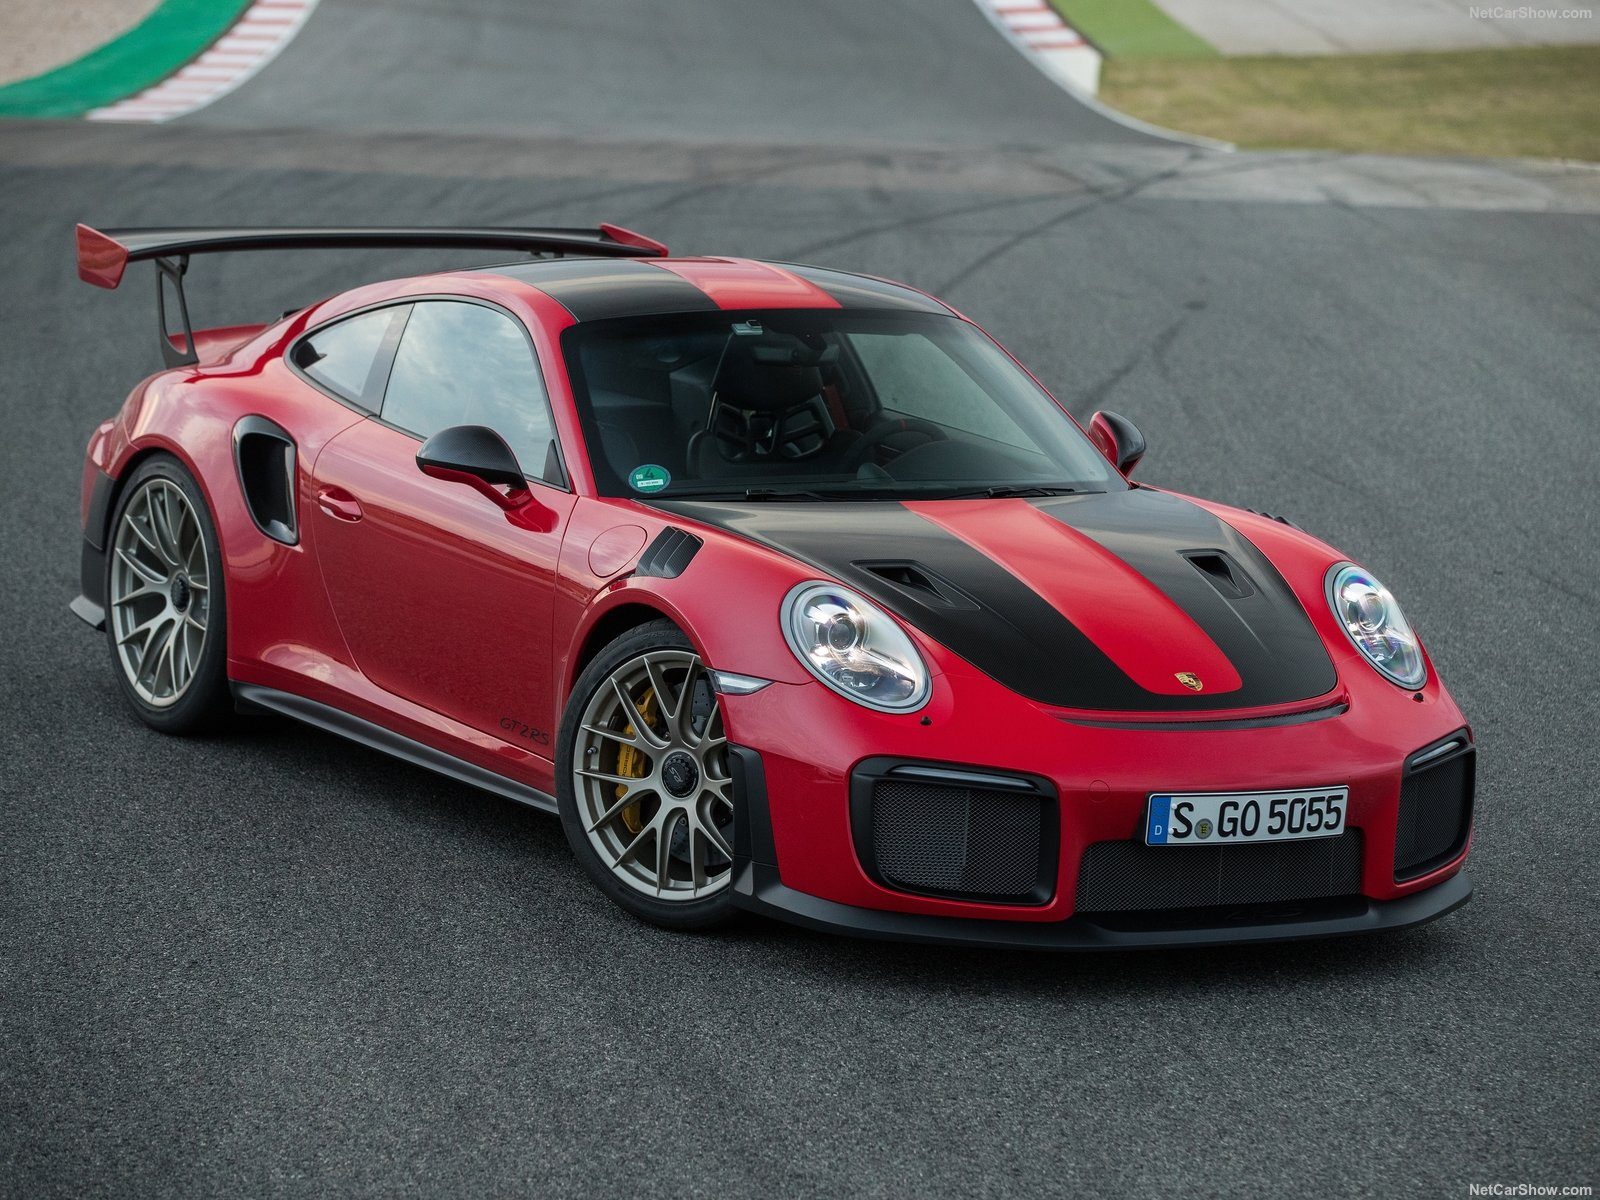 Porsche 911 Gt2 Rs Picture 183233 Porsche Photo HD Style Wallpapers Download free beautiful images and photos HD [prarshipsa.tk]